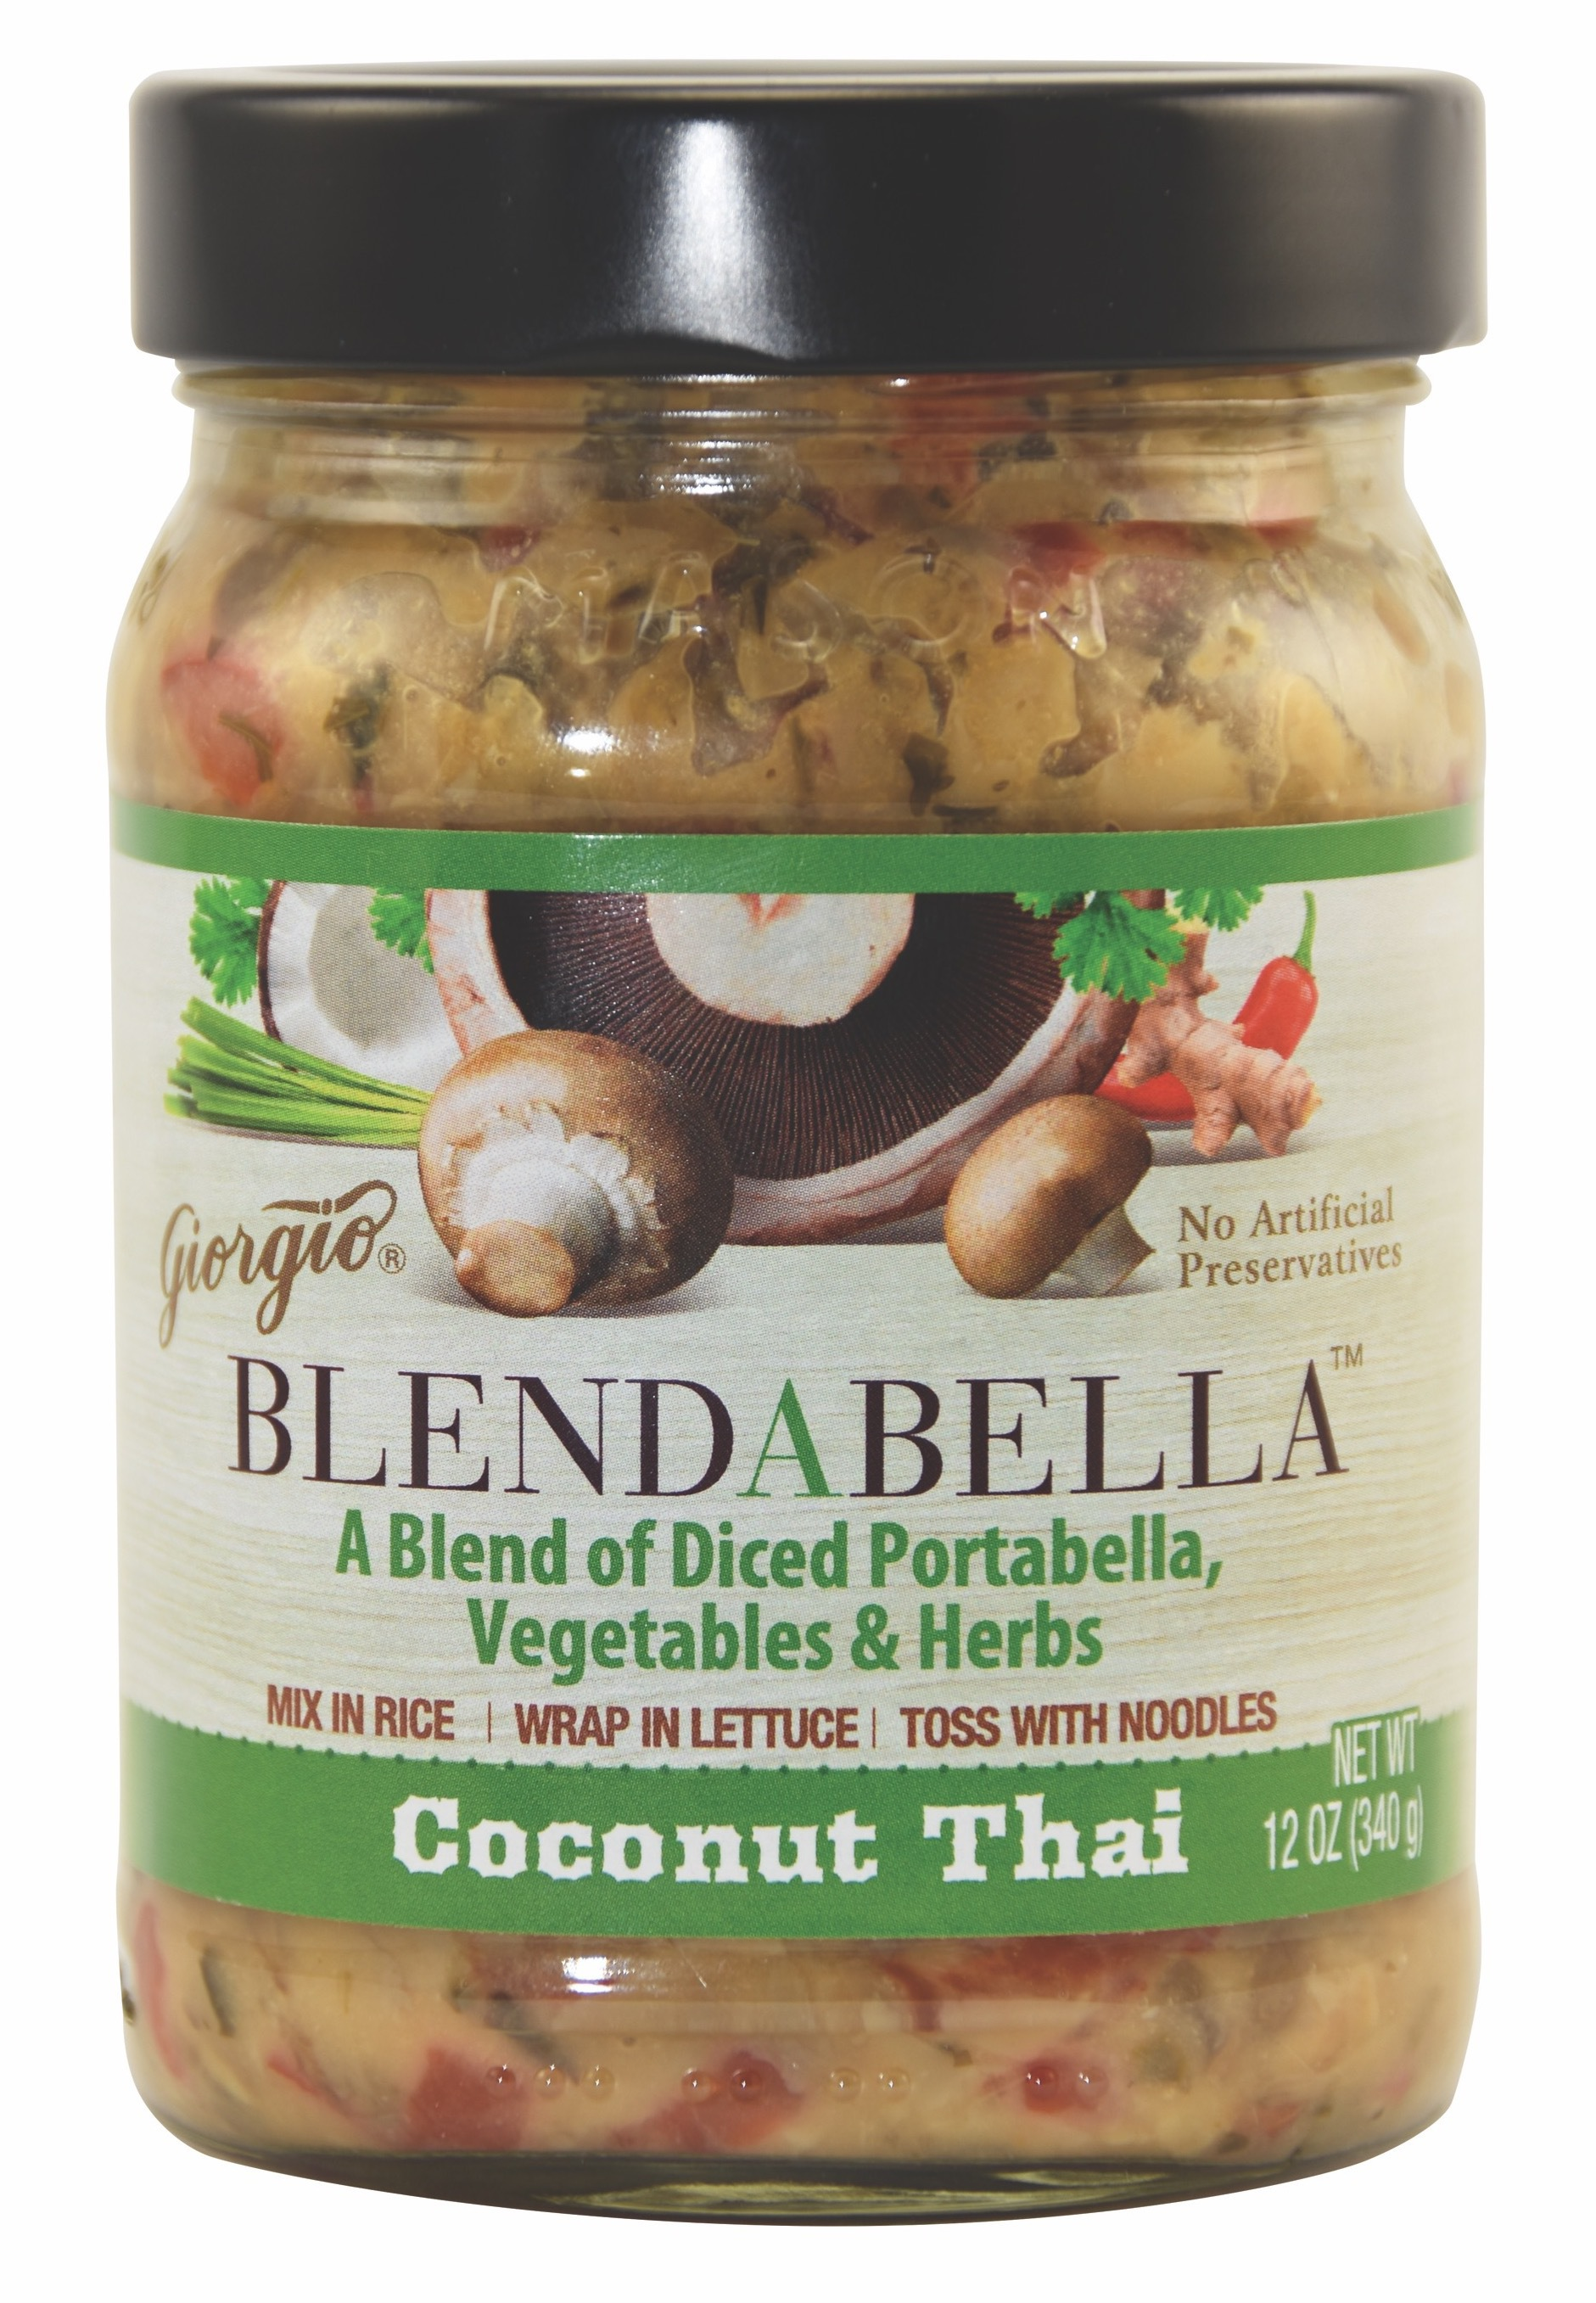 Coconut Thai A Blend Of Diced Portabella, Vegetables & Herbs | The